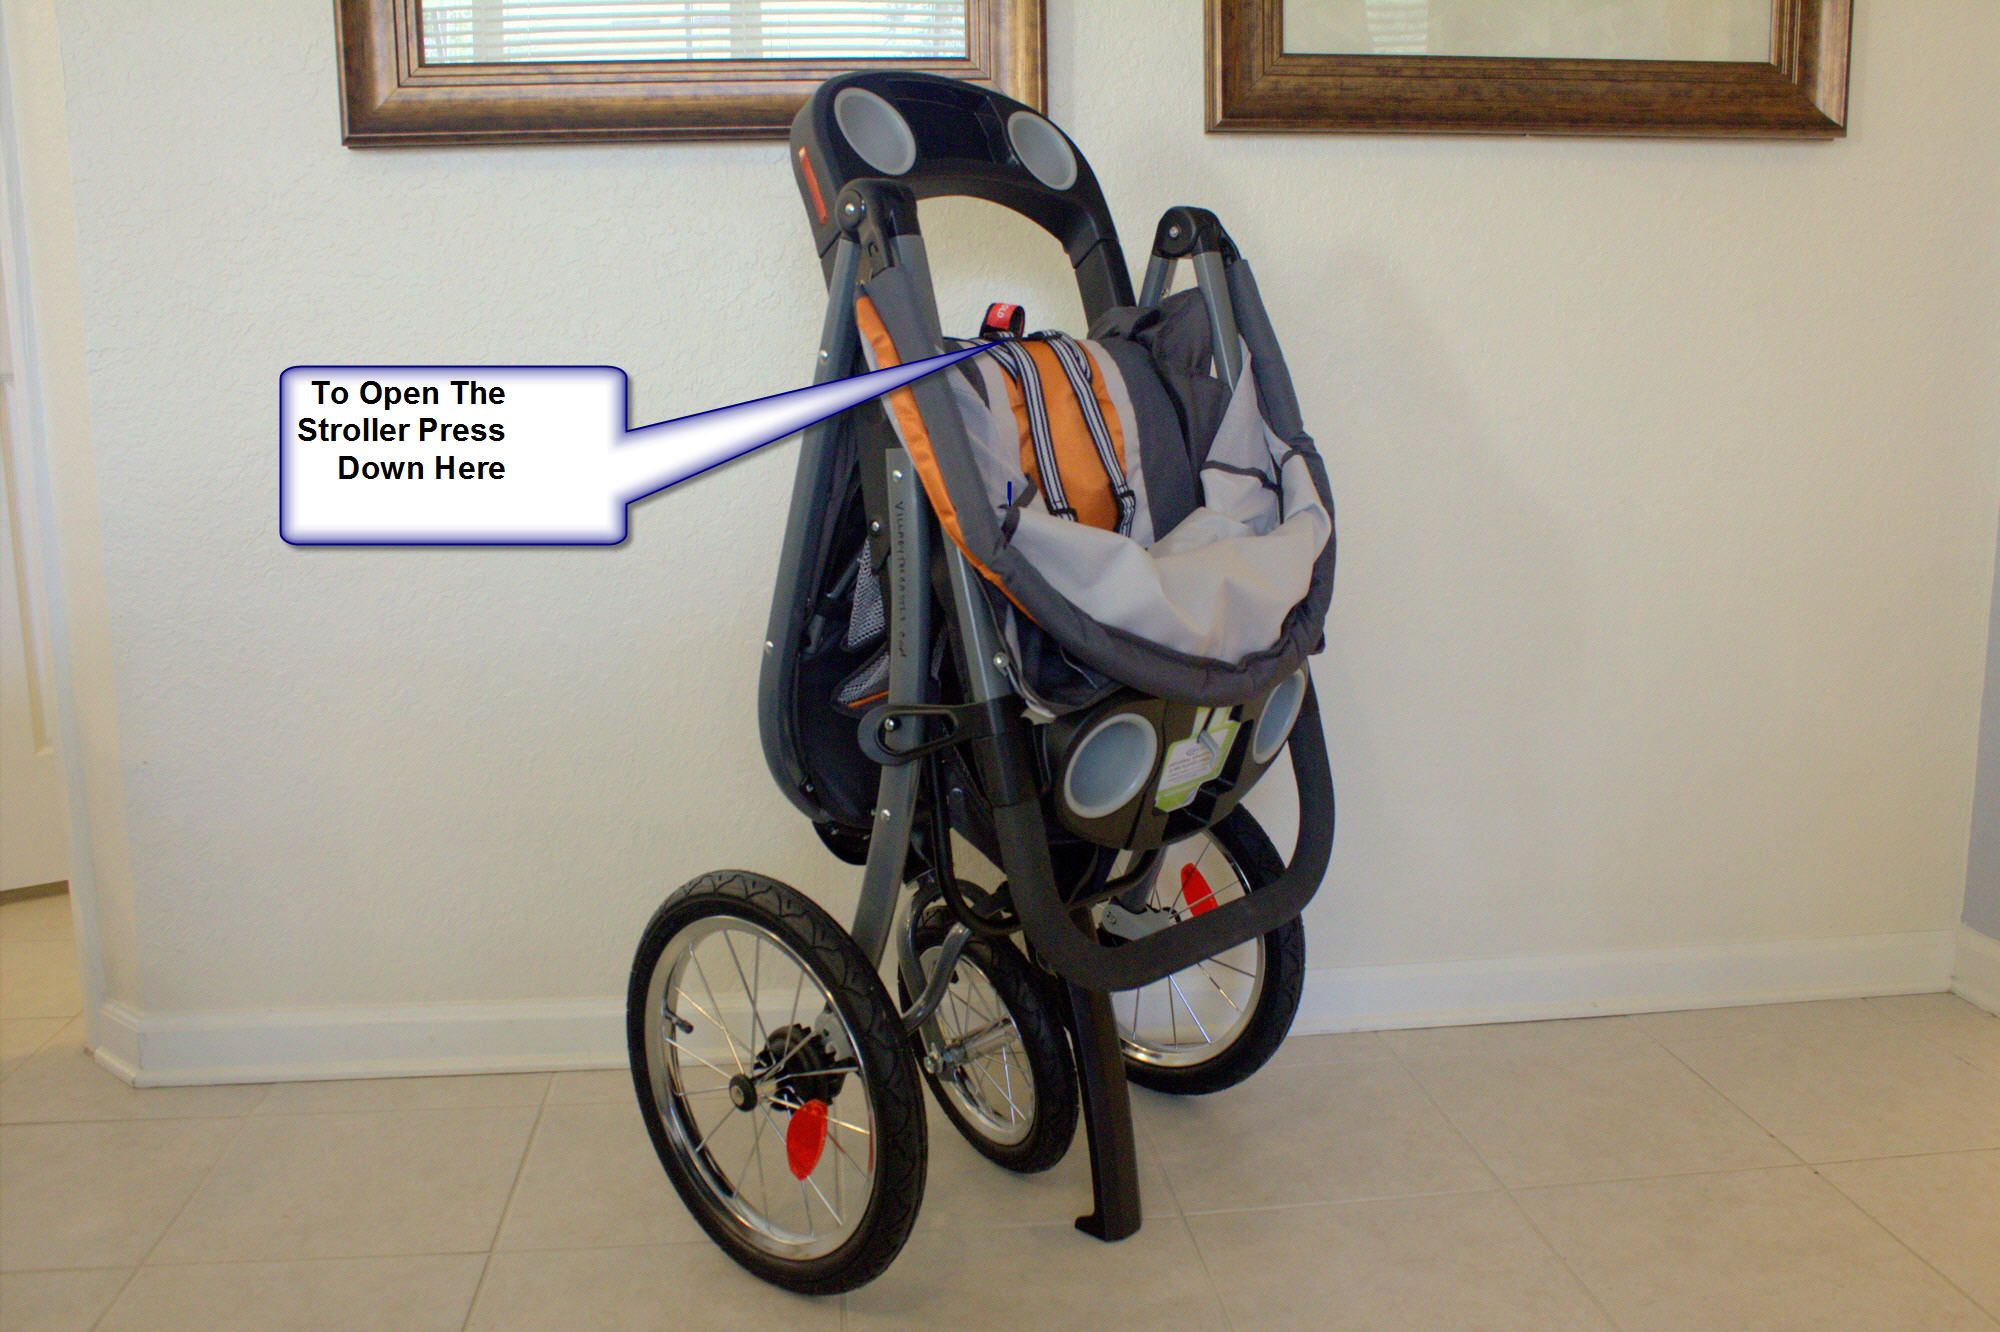 Open The jogging stroller